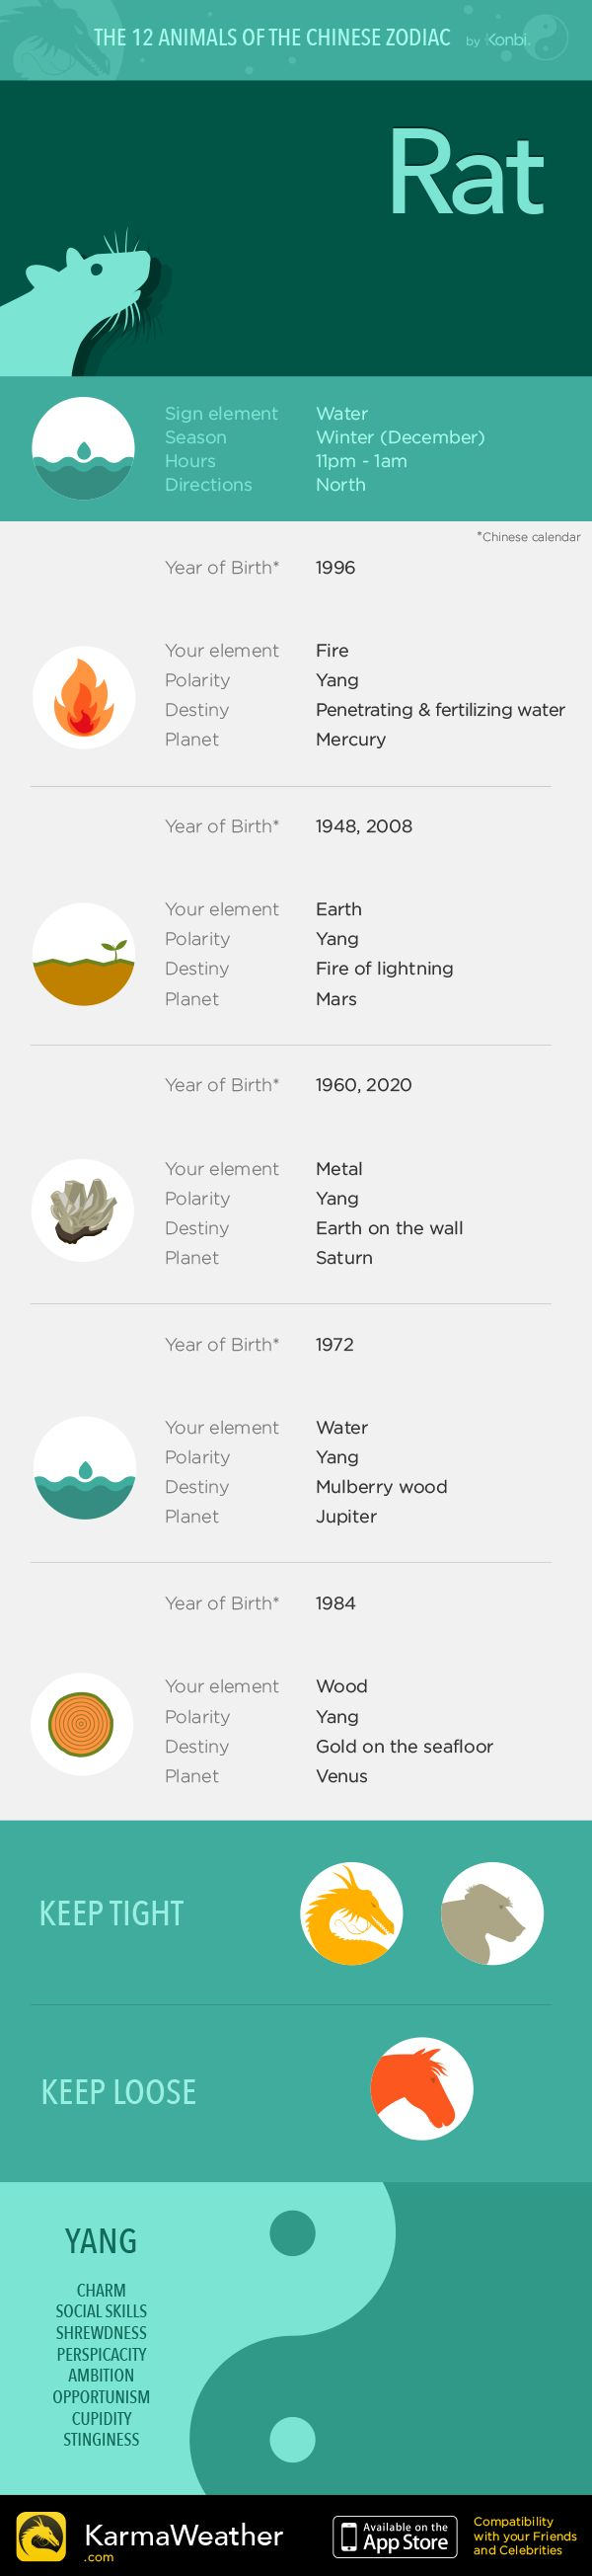 Rat — Infography and Chinese horoscope for your sign #KarmaWeather - Chinese compatibility app for iPhone